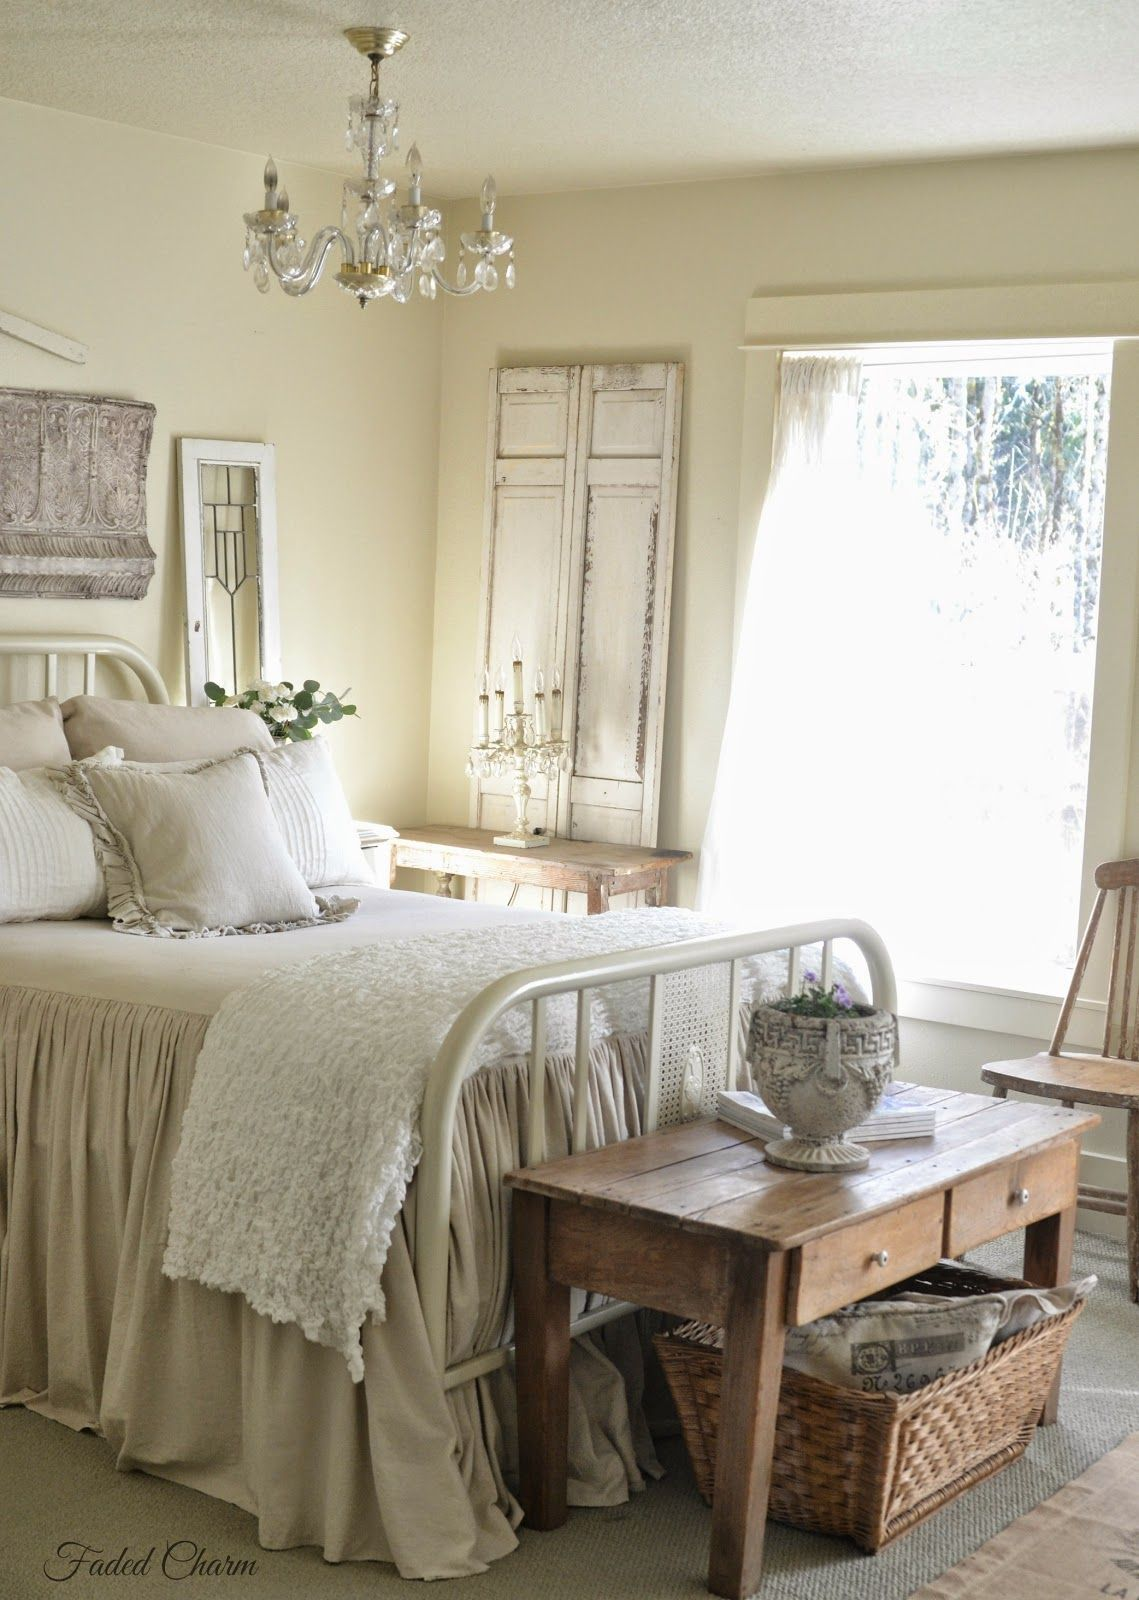 Farmhouse Bedroom  salvaged architectural pieces and